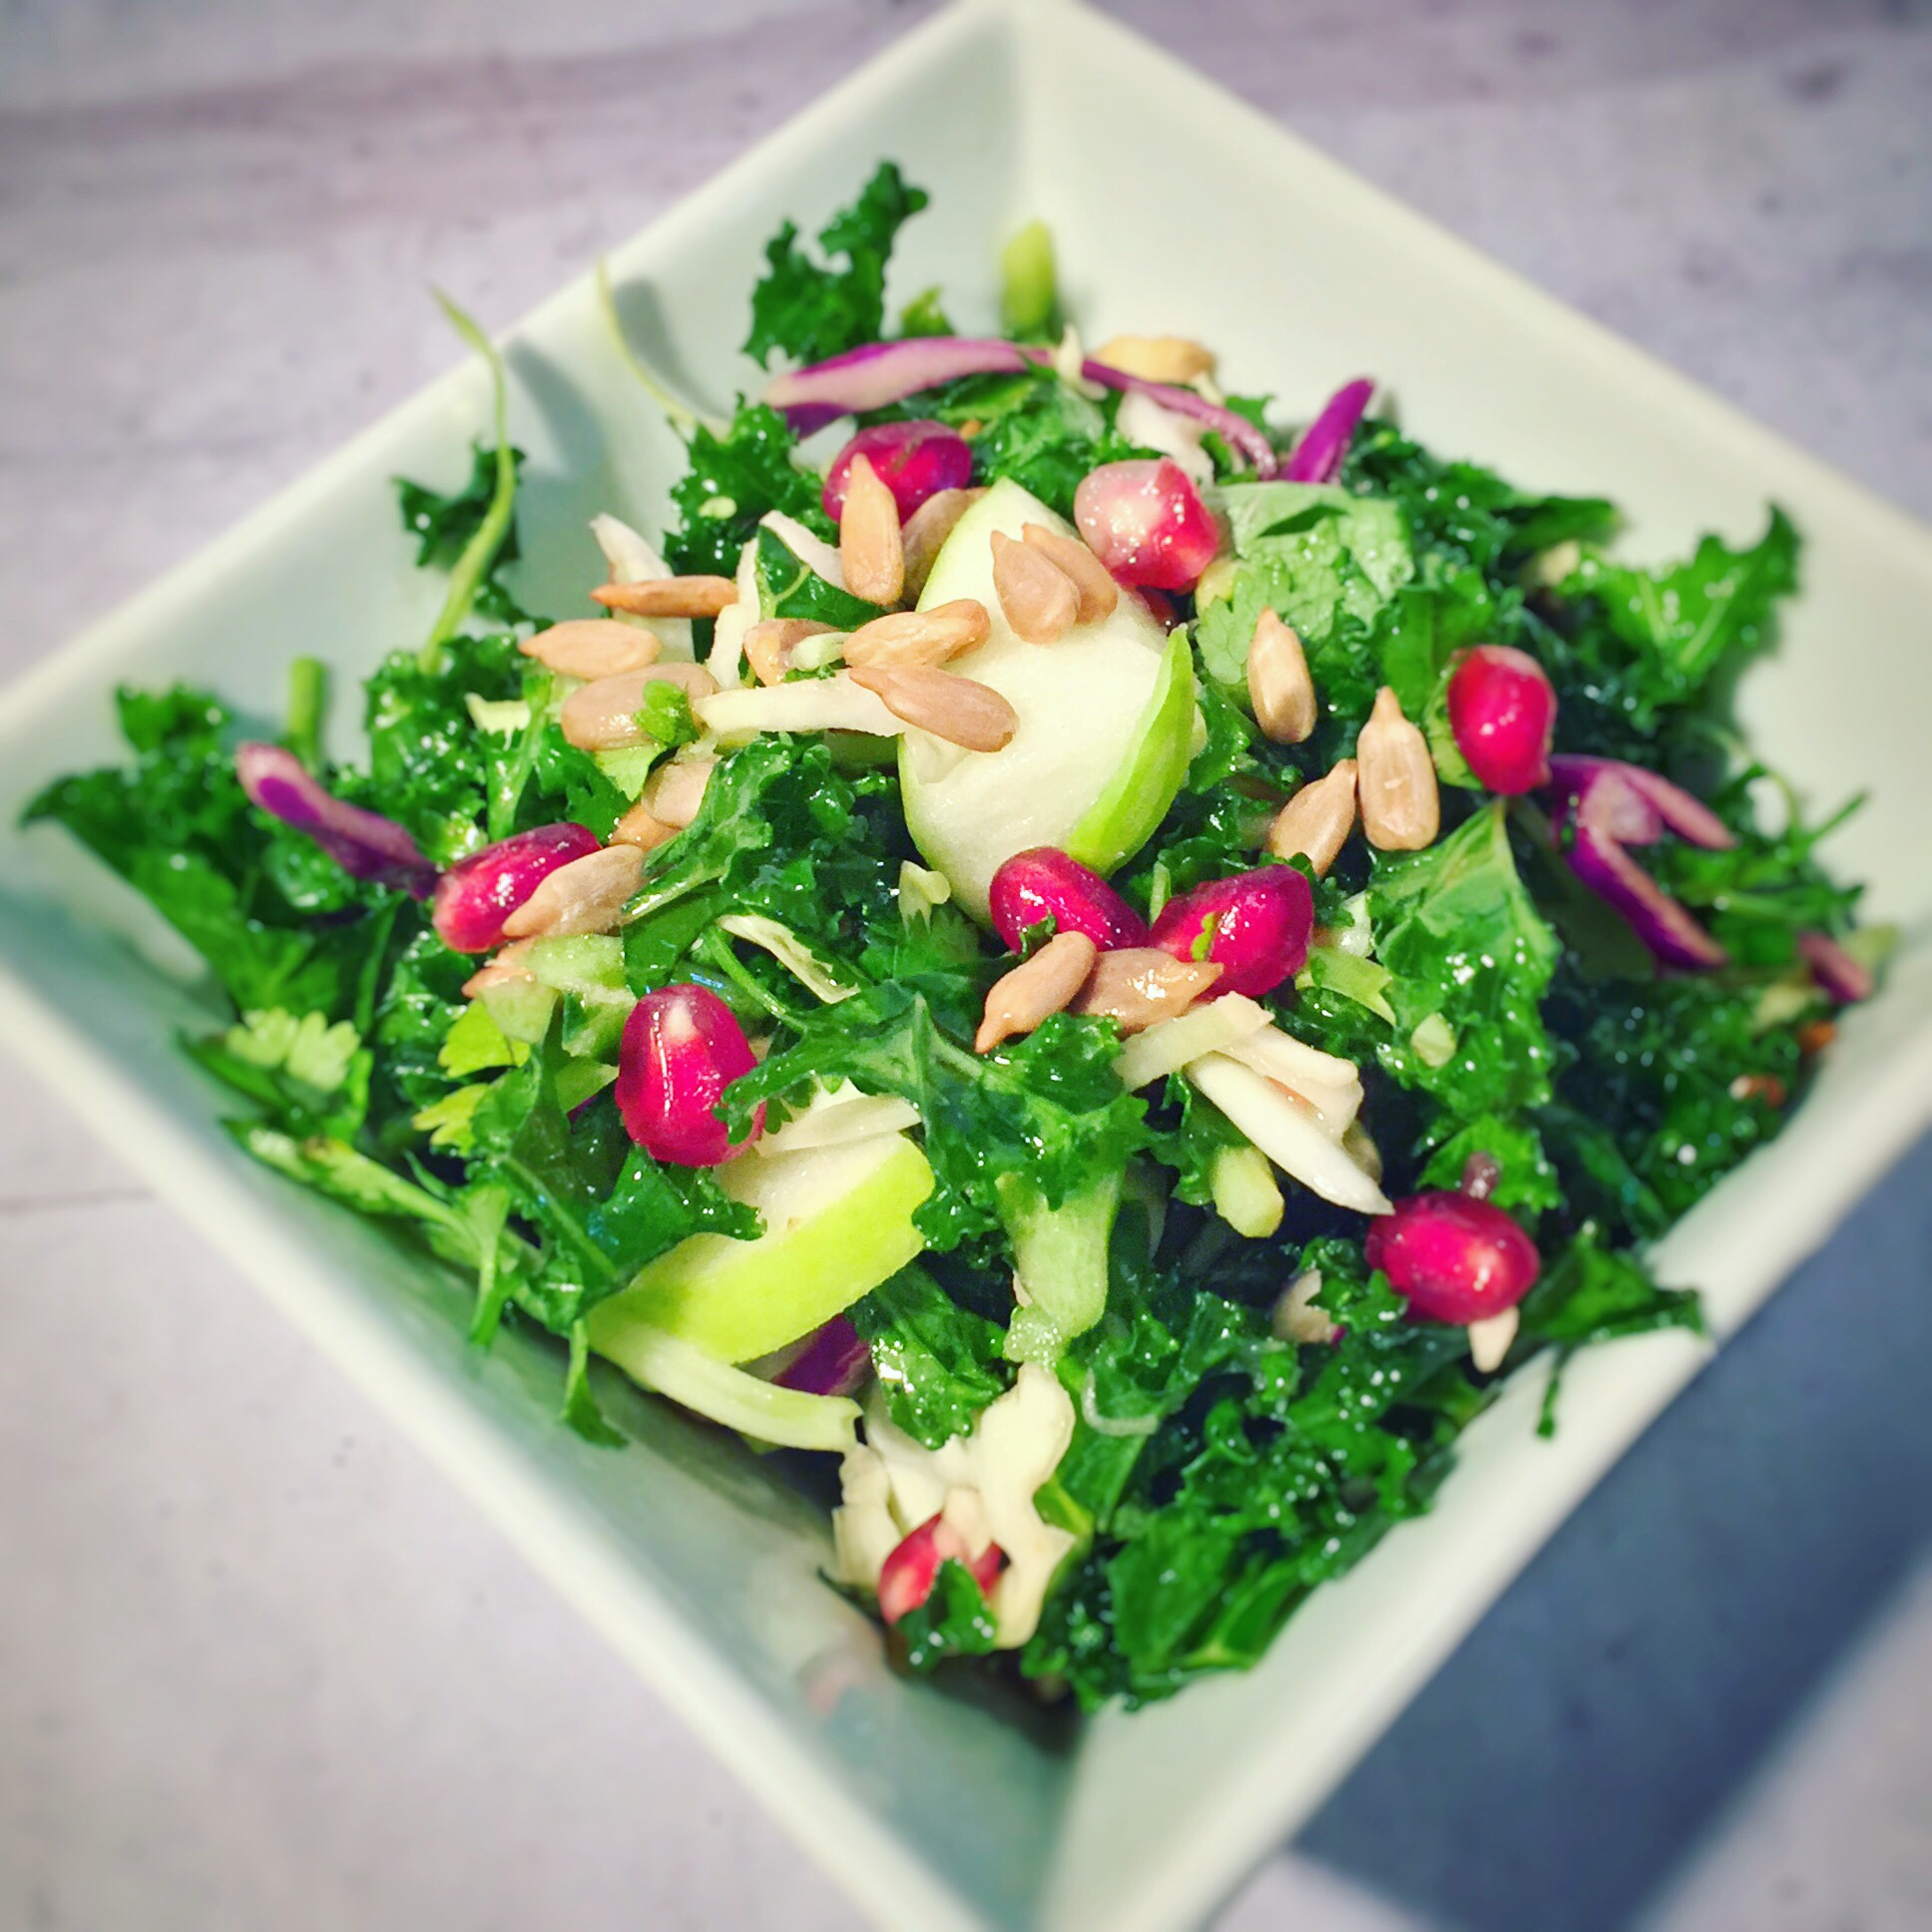 Festive Winter Salad with Citrus Vinaigrette